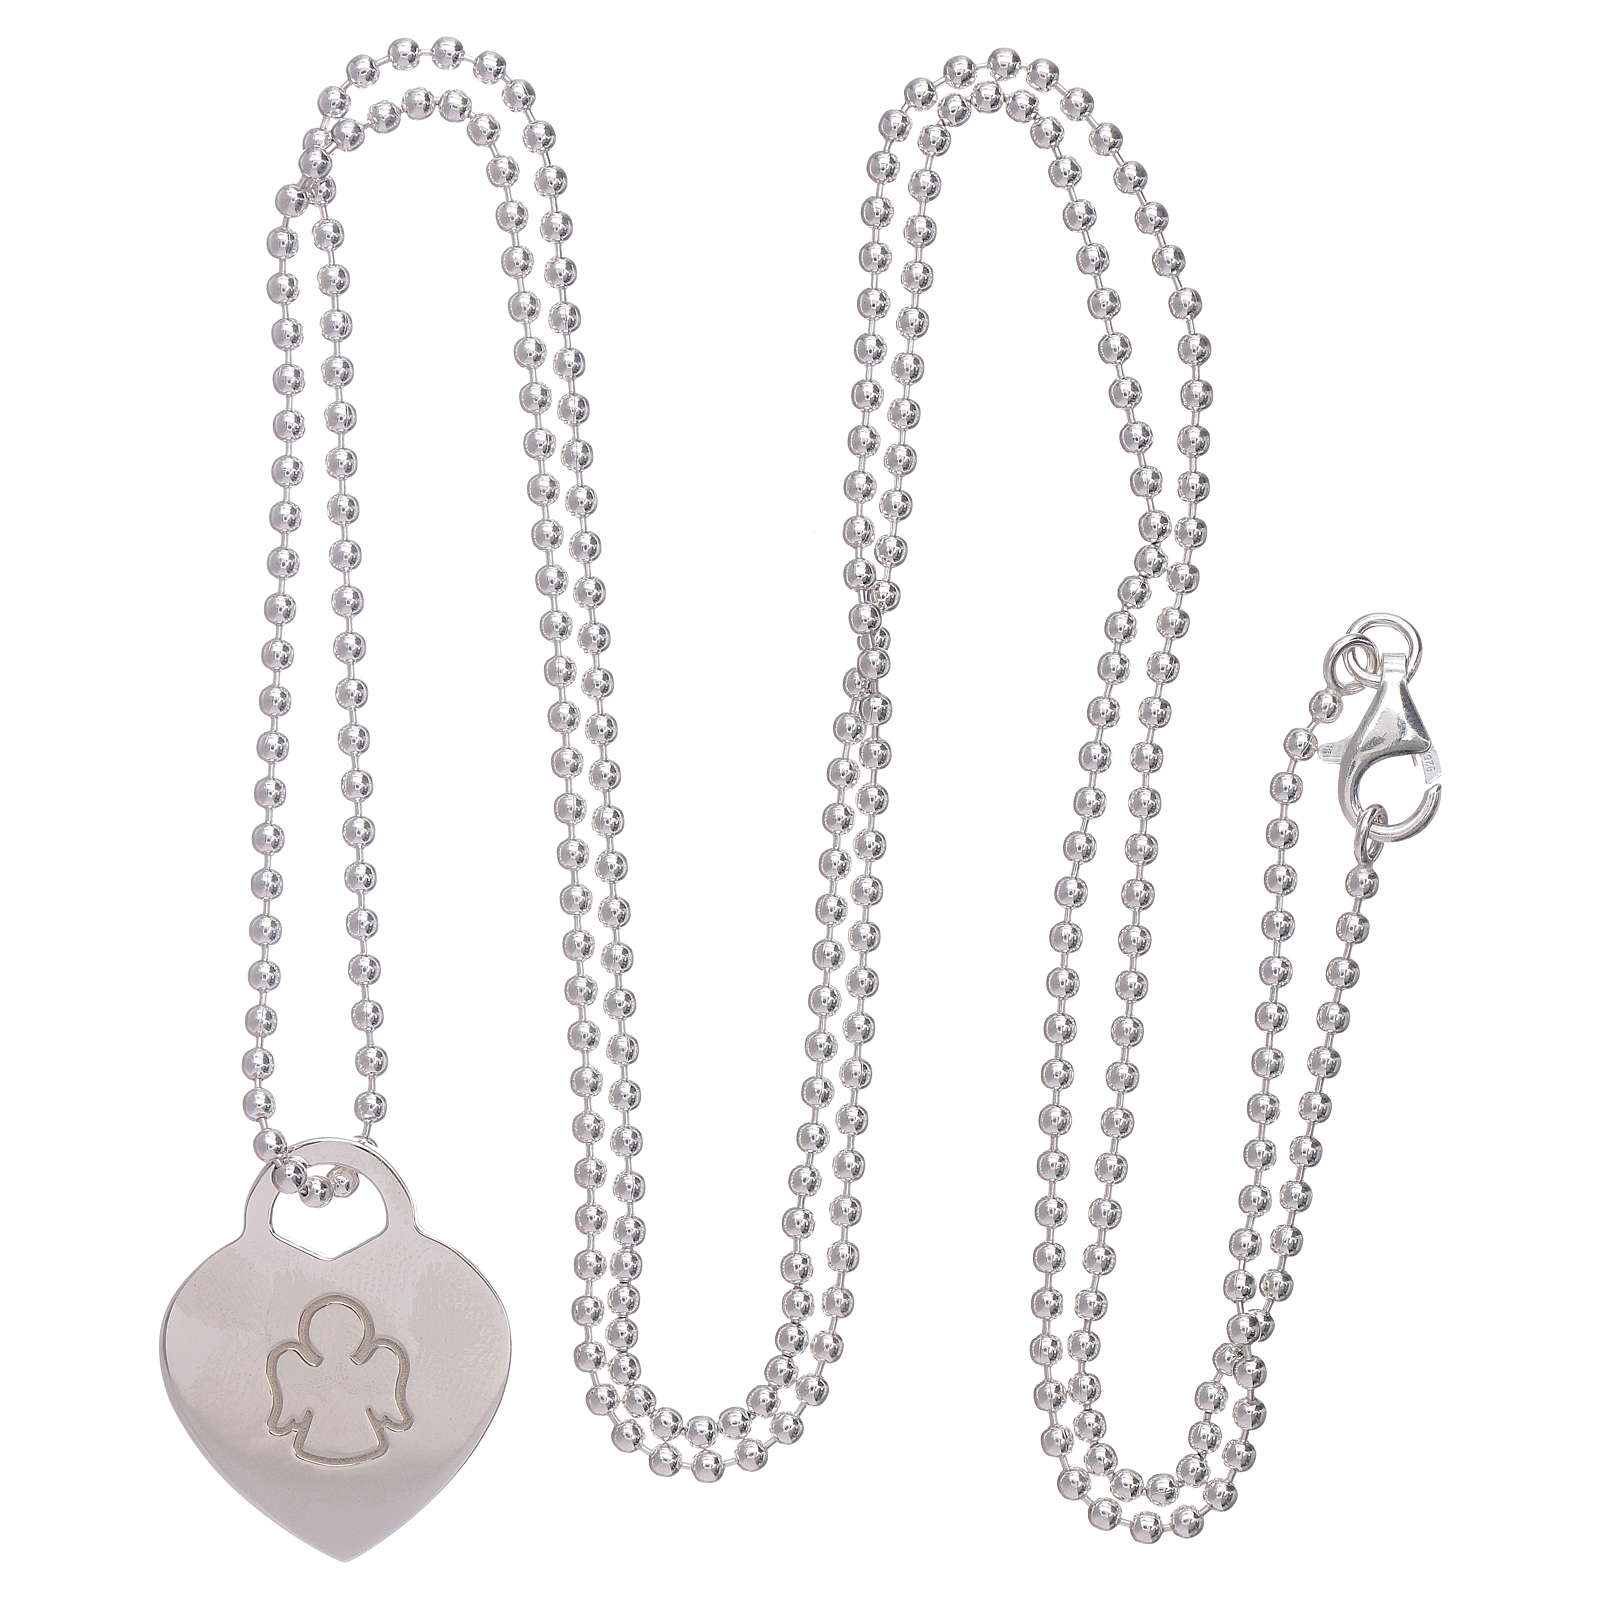 AMEN necklace with heart pendant in 925 sterling silver finished in rhodium 4